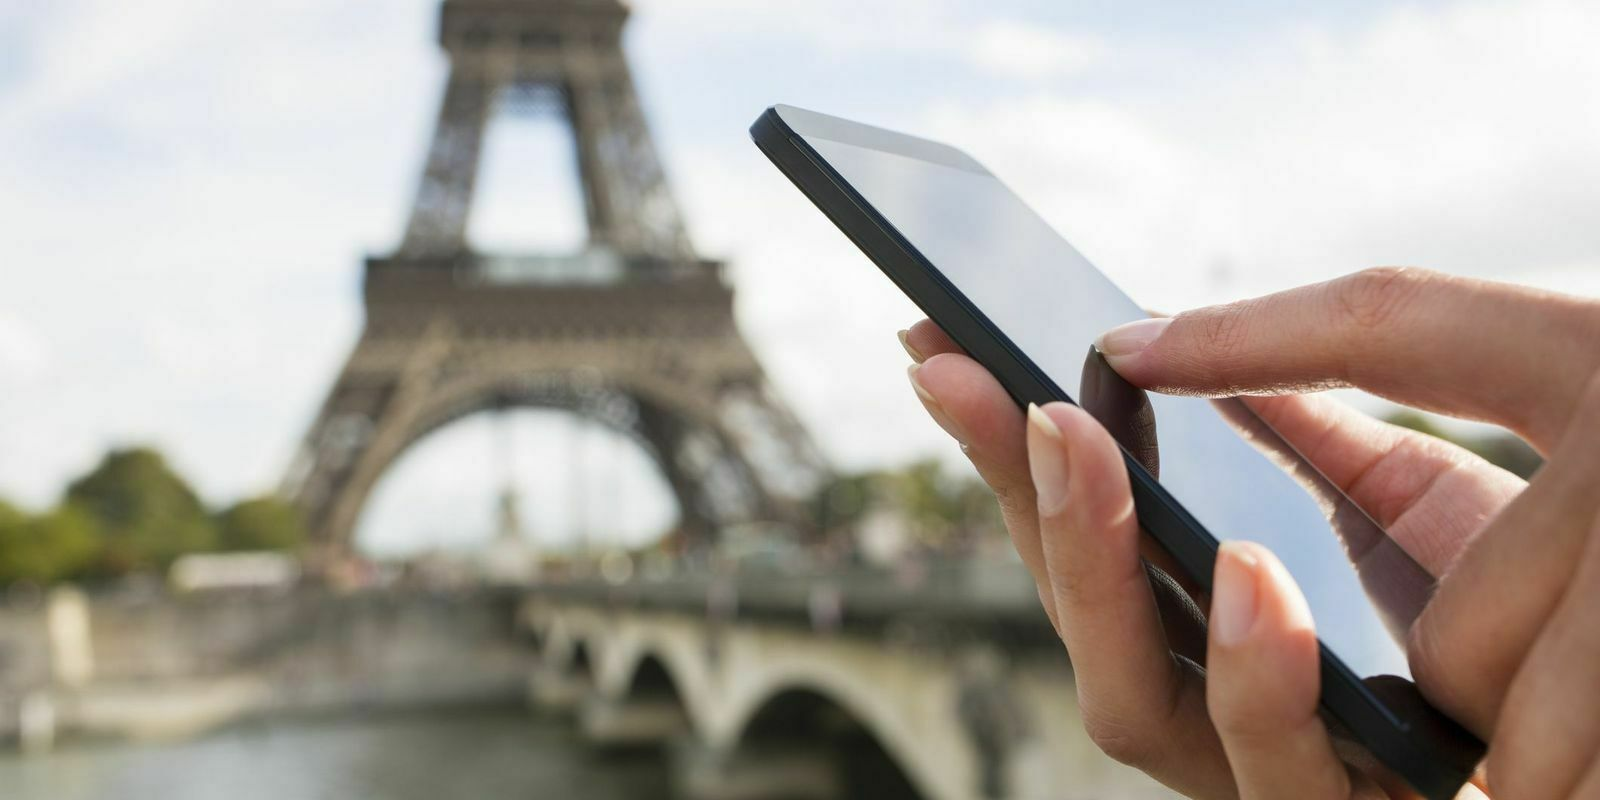 How to prepare your phone for a trip abroad